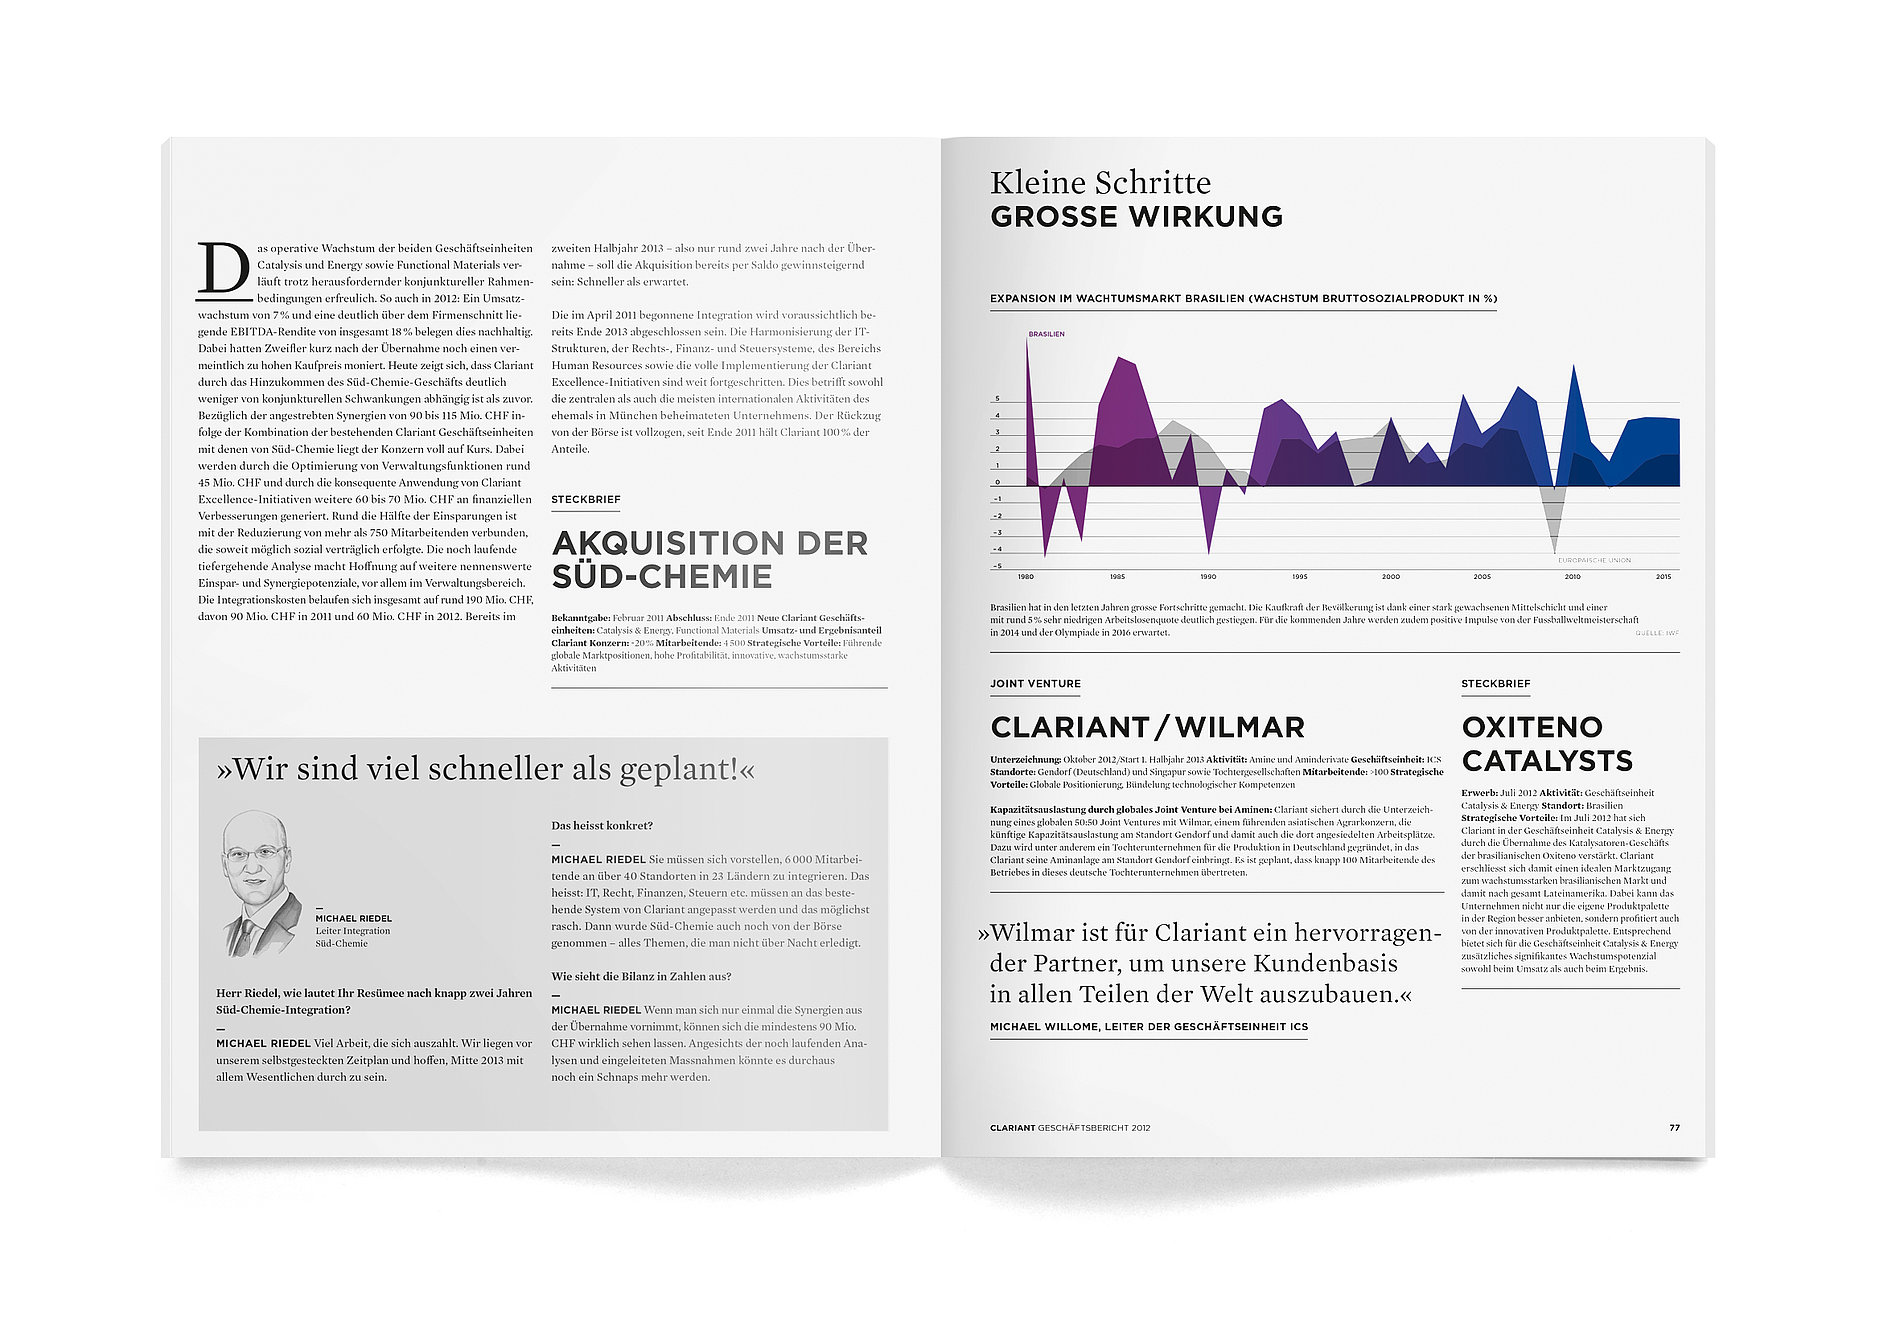 Clariant Annual Report 2012 | Red Dot Design Award